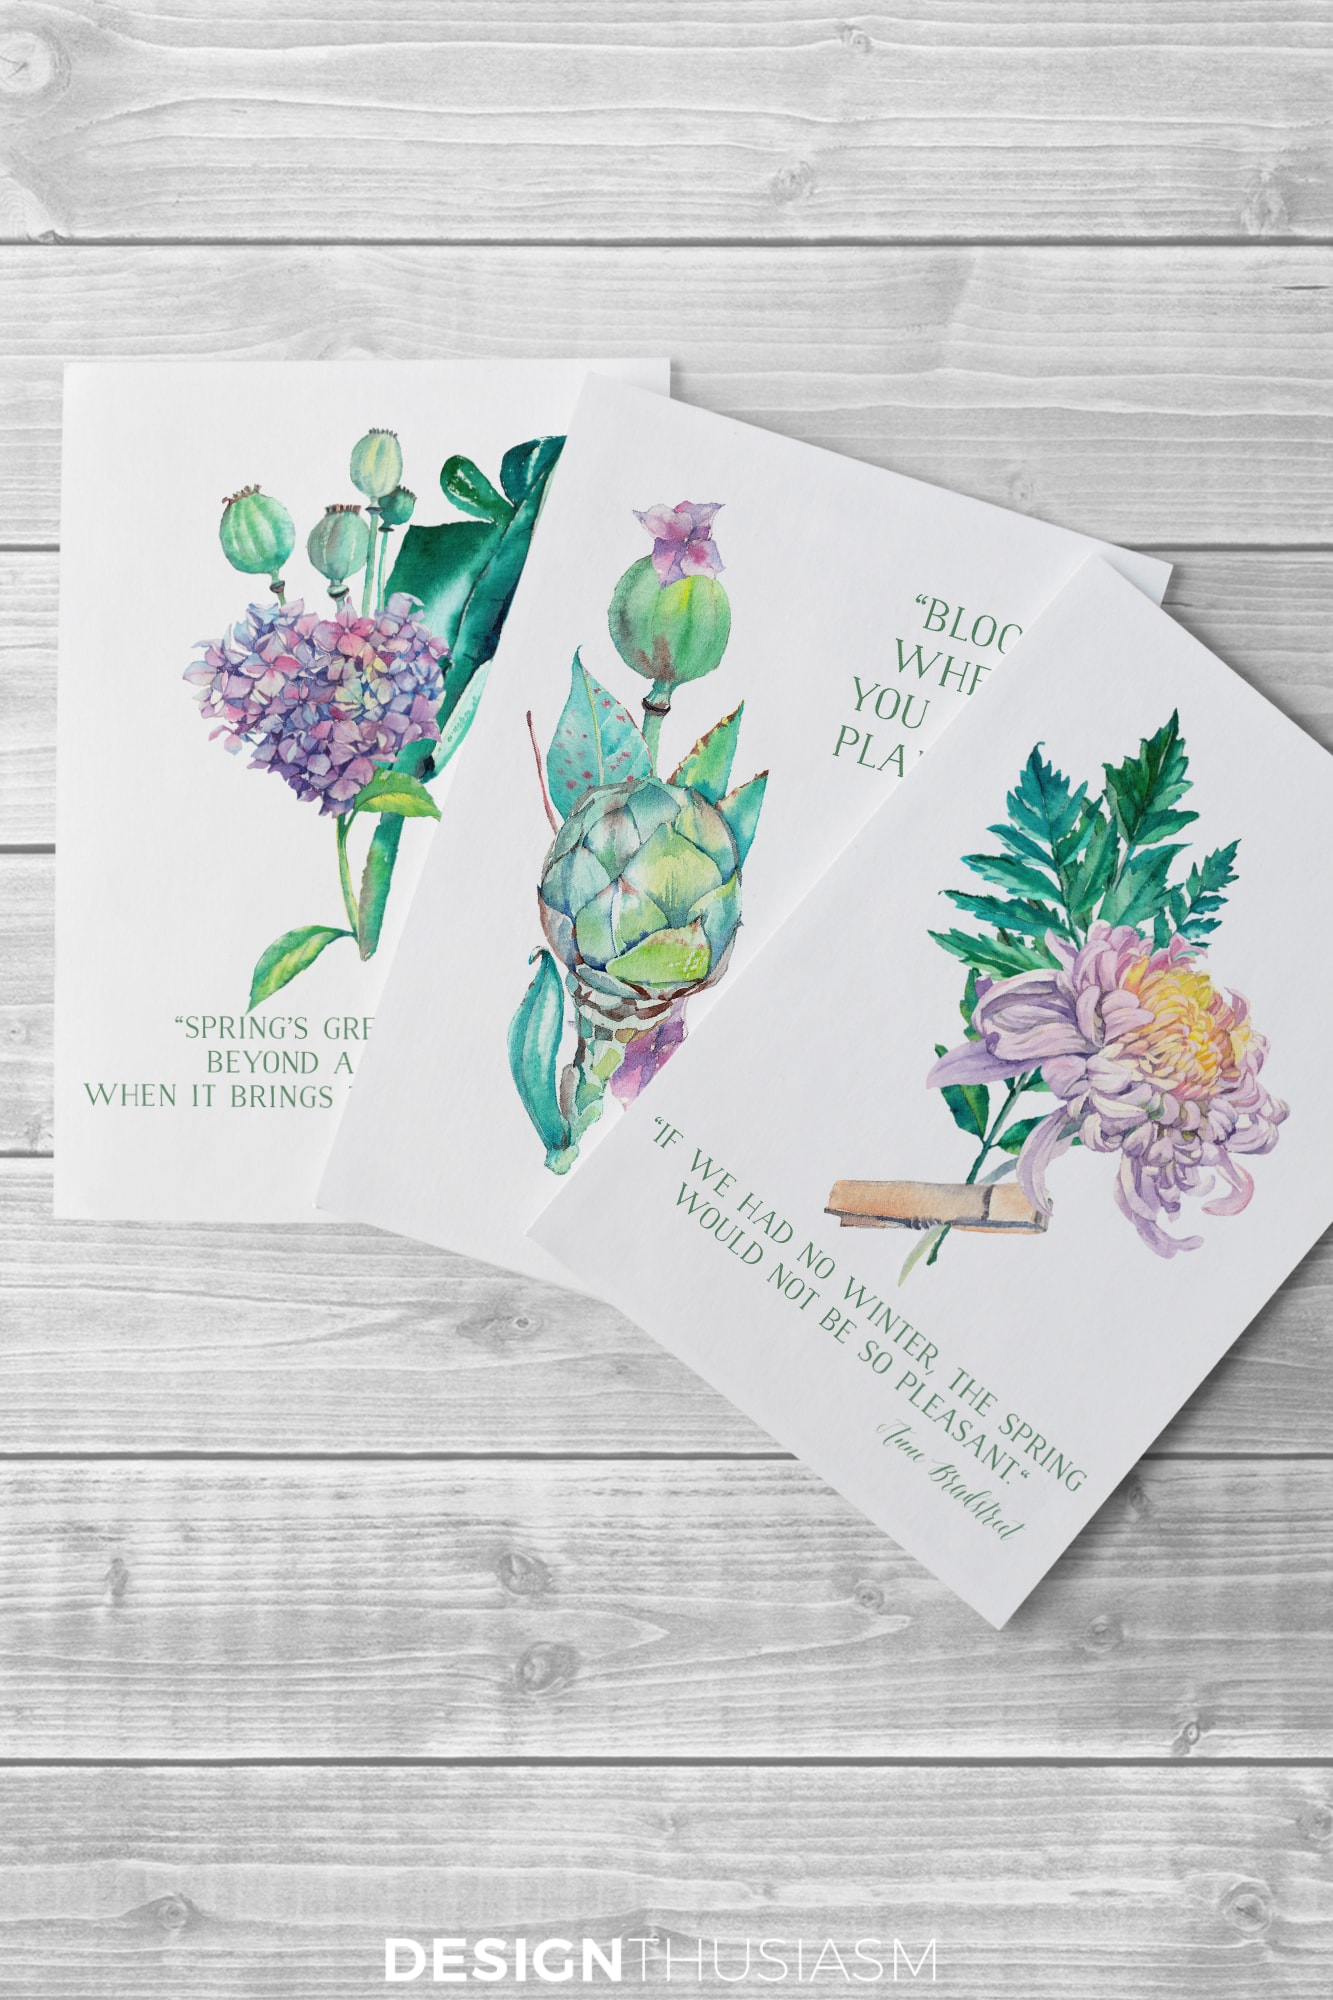 photo regarding Free Printable Decor known as No cost Printable Artwork for Spring: Watercolor Bouquets for Do it yourself